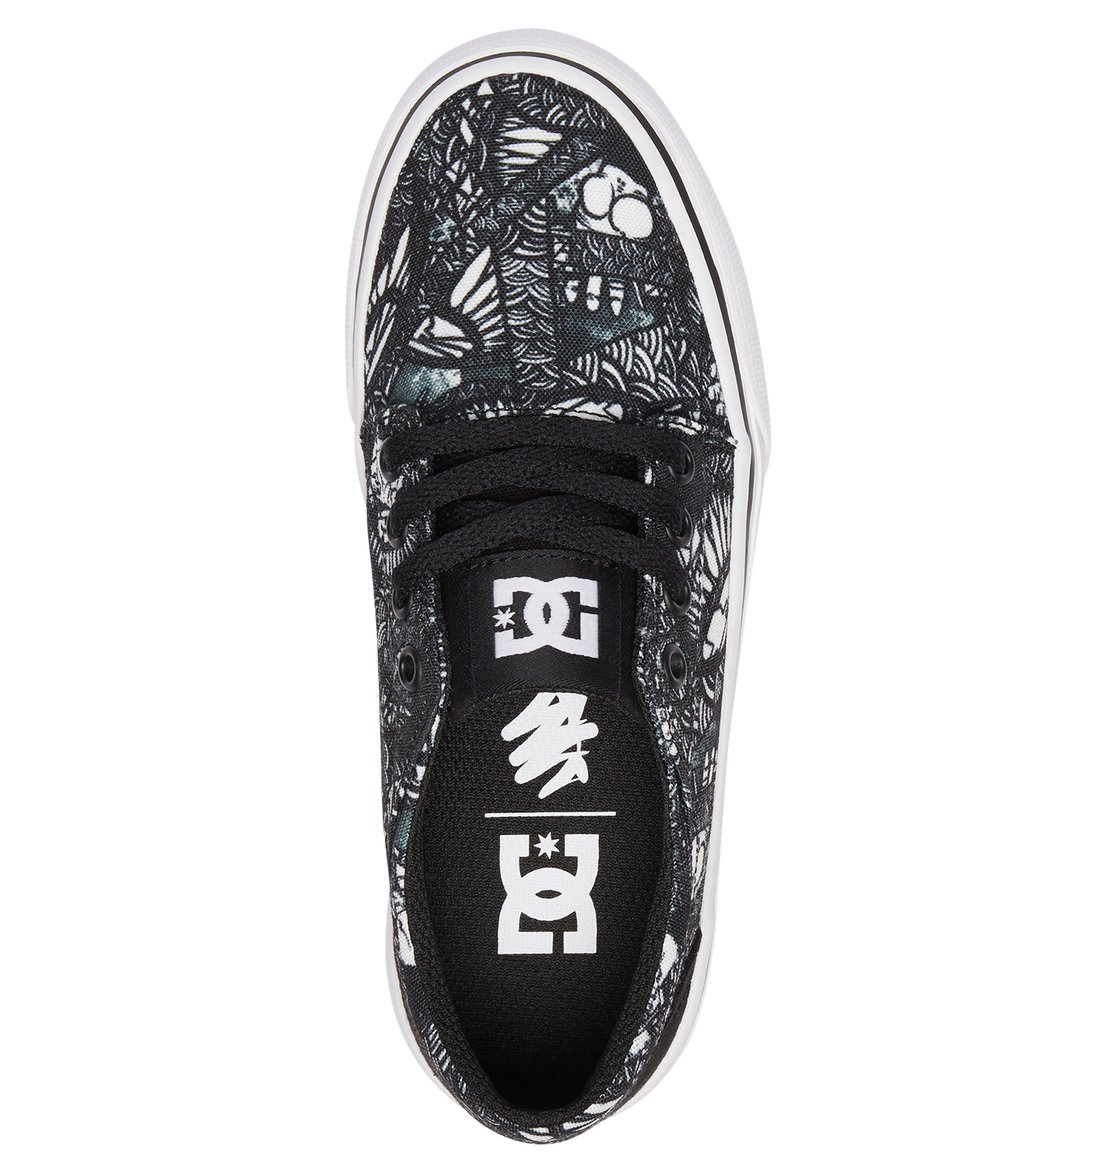 aaaa8b2228 3 Kid s Trase X Darbotz Shoes ADBS300288 DC Shoes